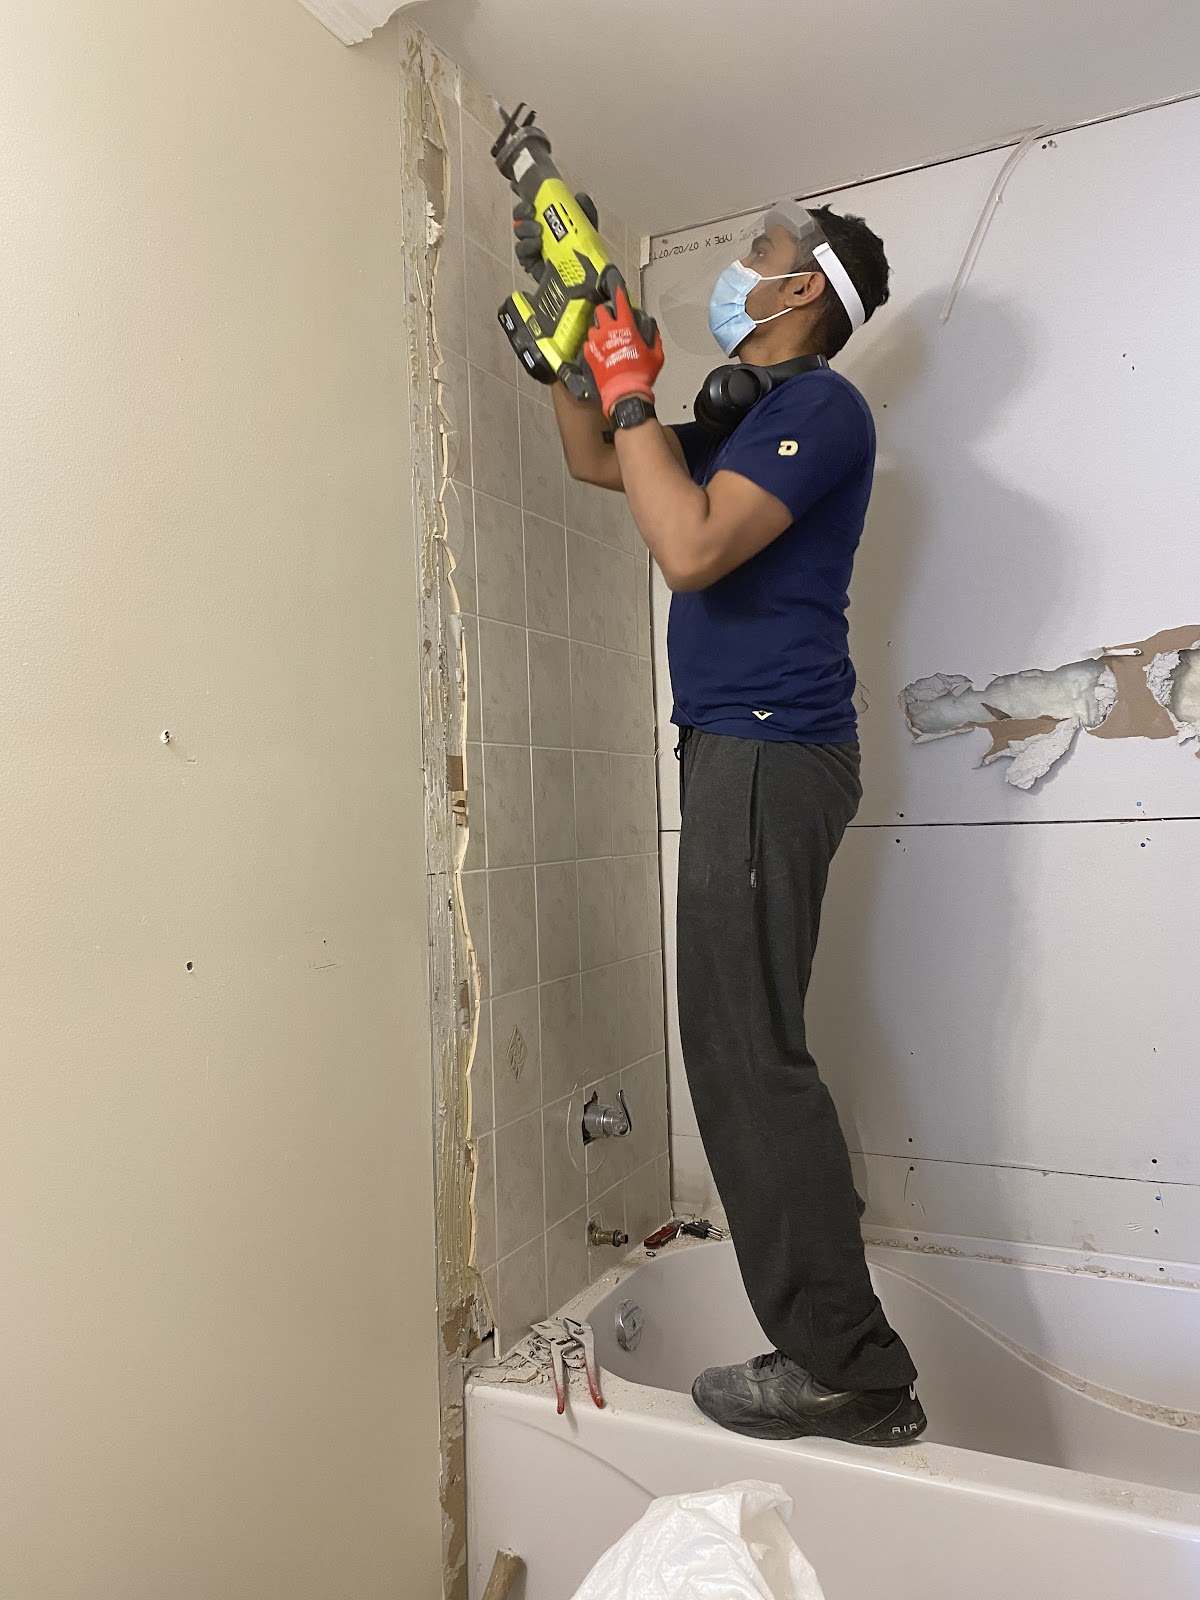 Cut out the wall but don't hit the studs to remove shower tiles